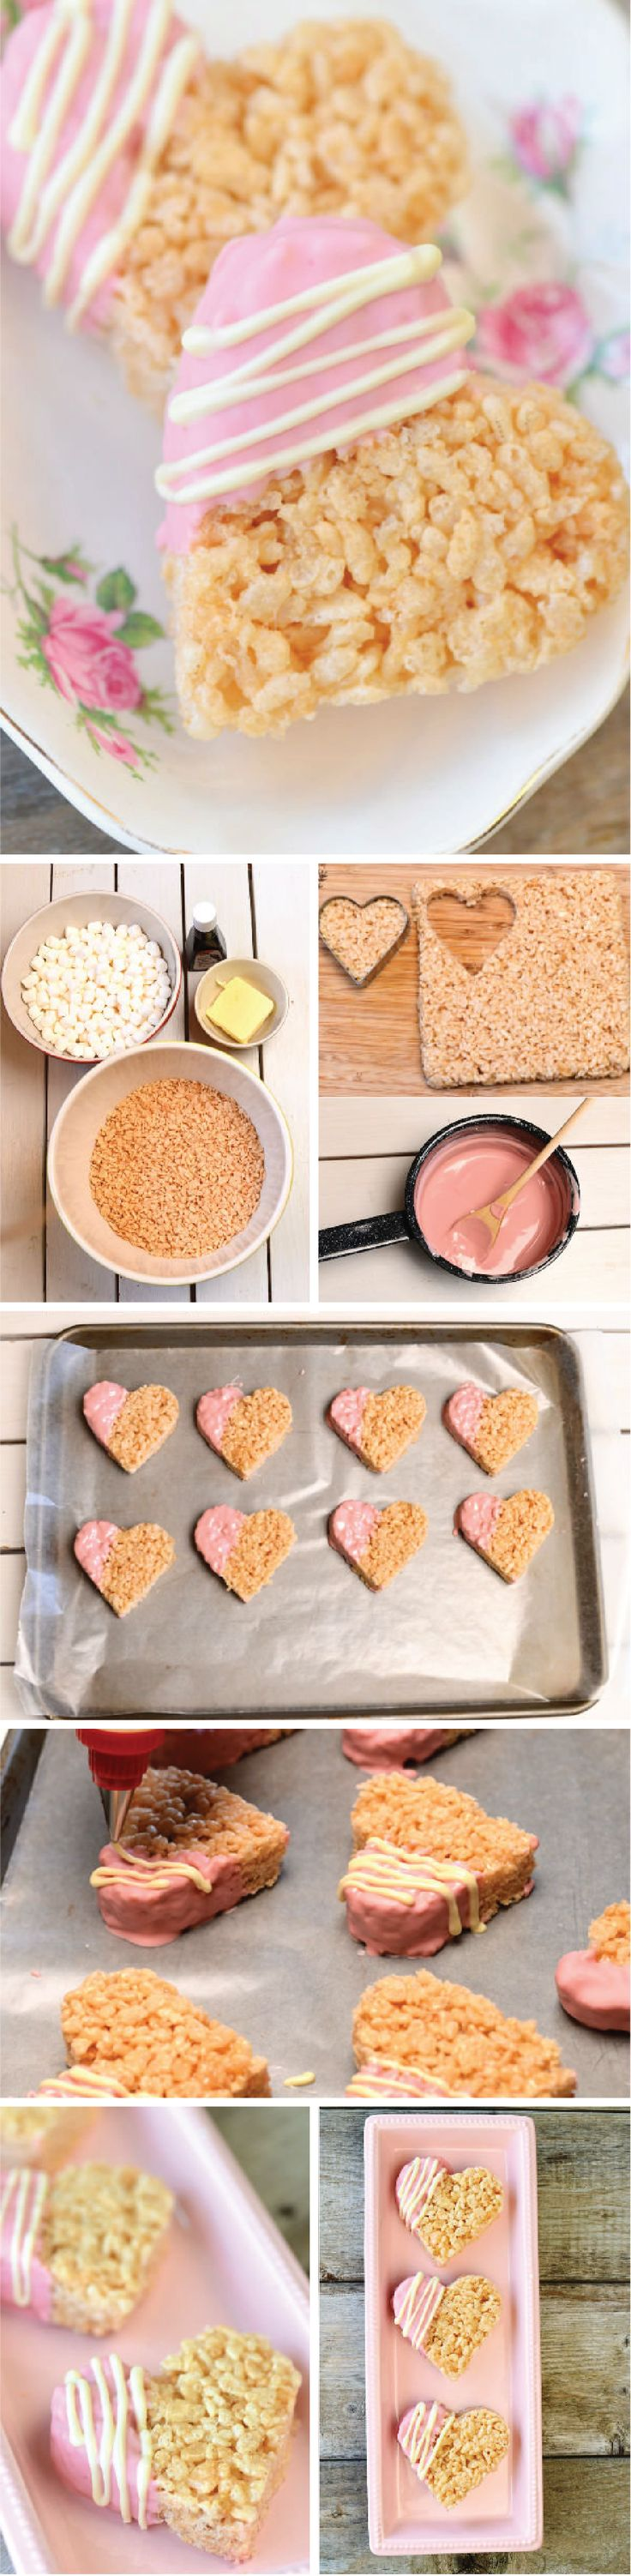 It doesn't take much to pull off an evening dinner party with friends. All you need is a little creativity and Rice Krispies® cereal. This recipe for Heart Shaped Rice Krispies Treats® would be perfect for Valentine's Day! Click here to learn more.